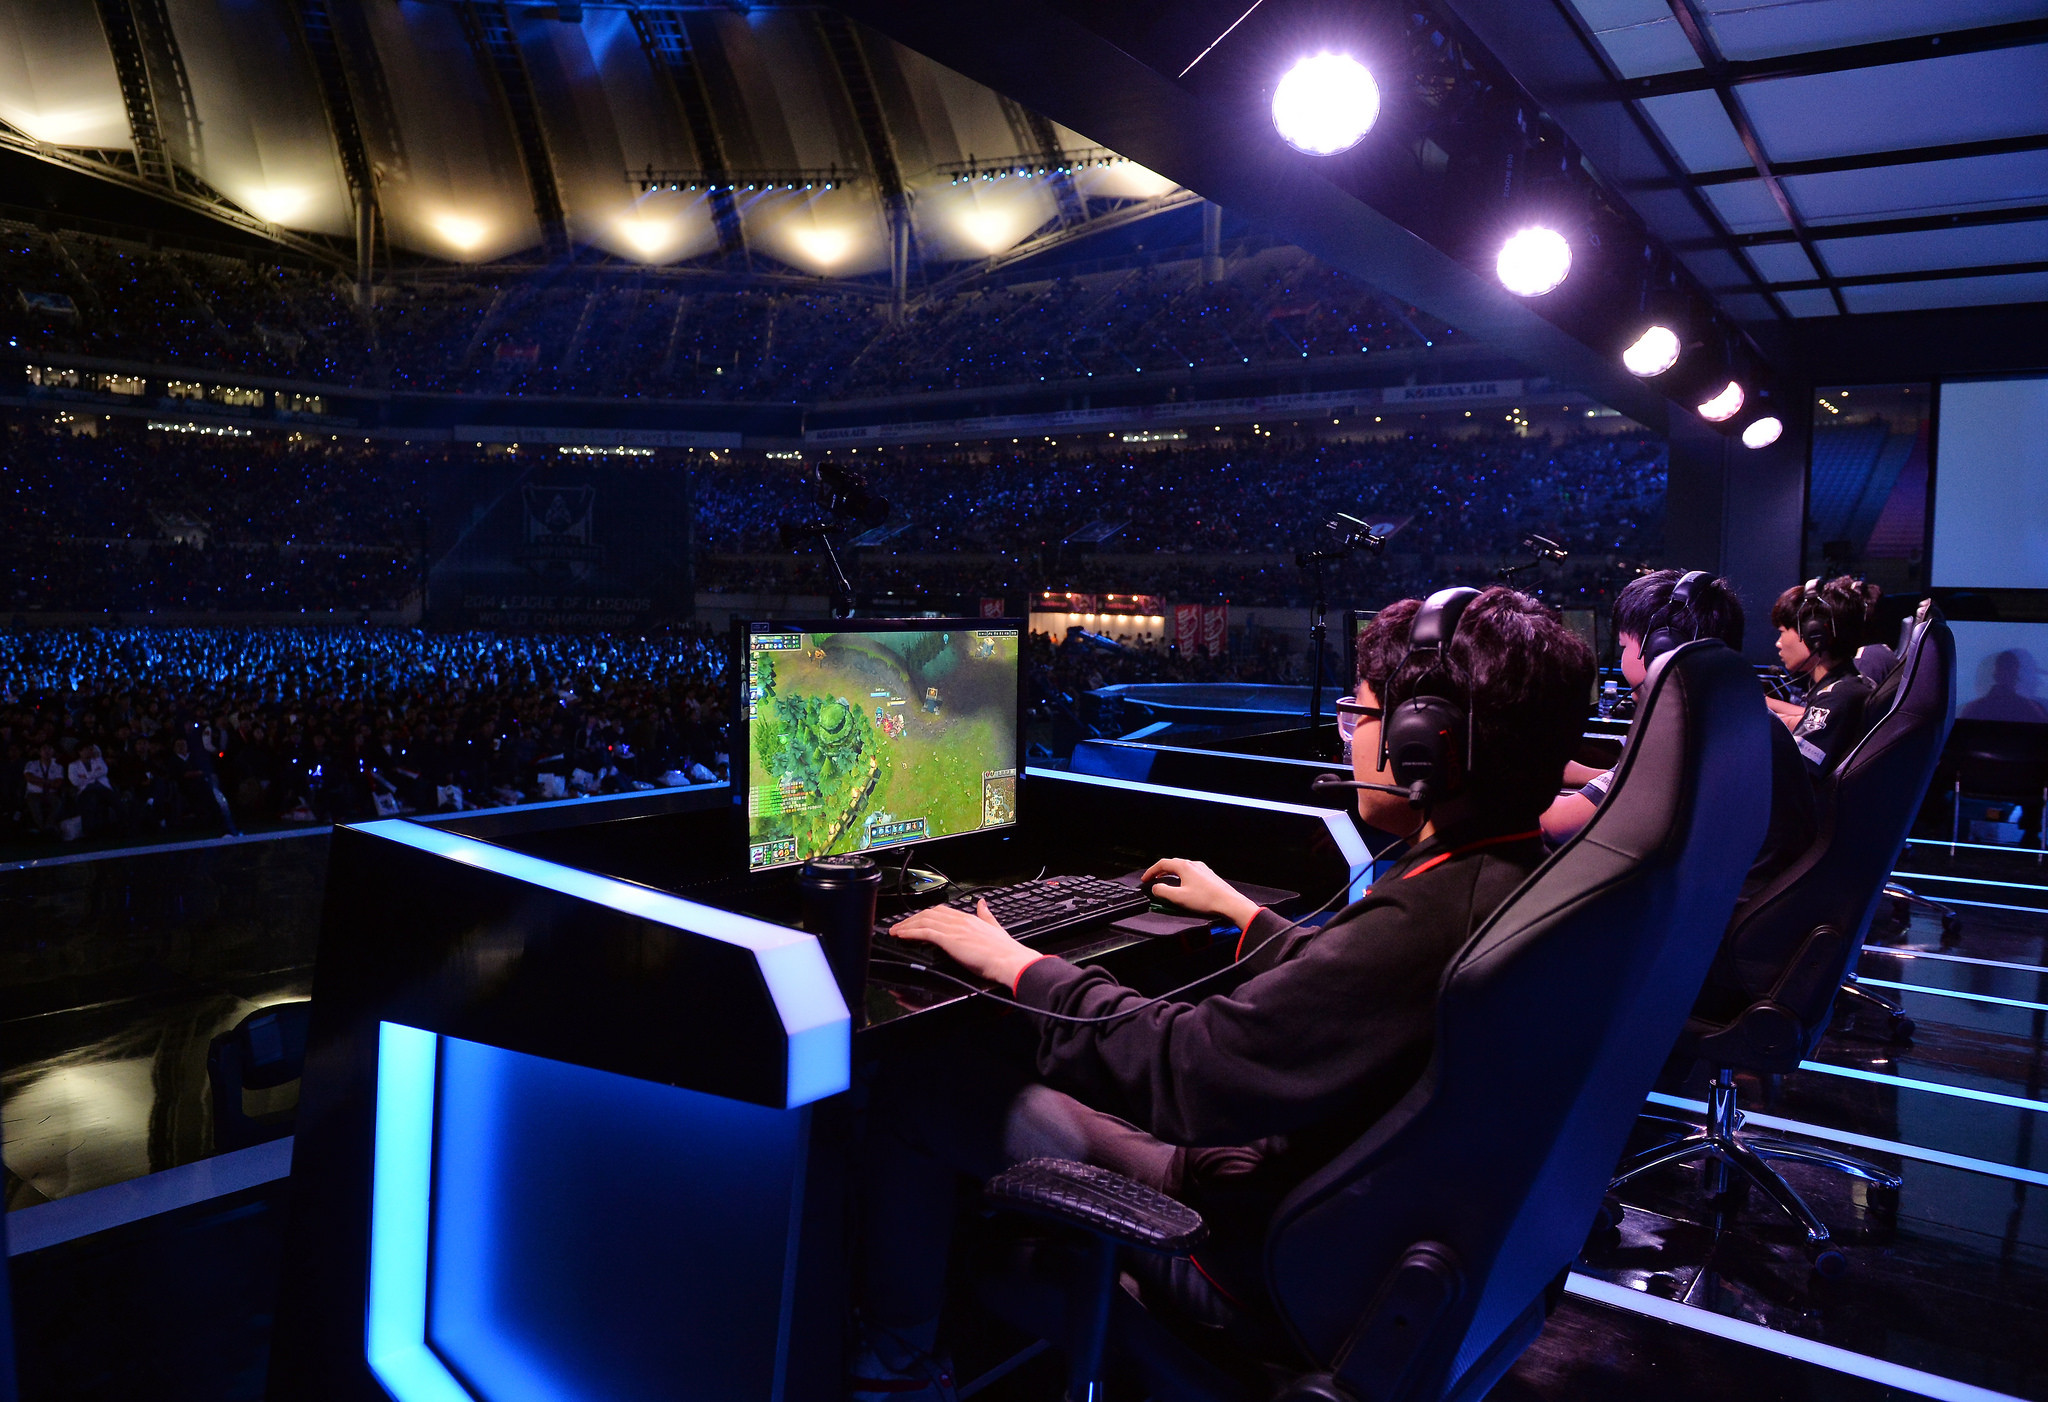 40,000 cheering fans watch the League of Legends gaming final match at World Cup Stadium in Seoul on Oct. 20.